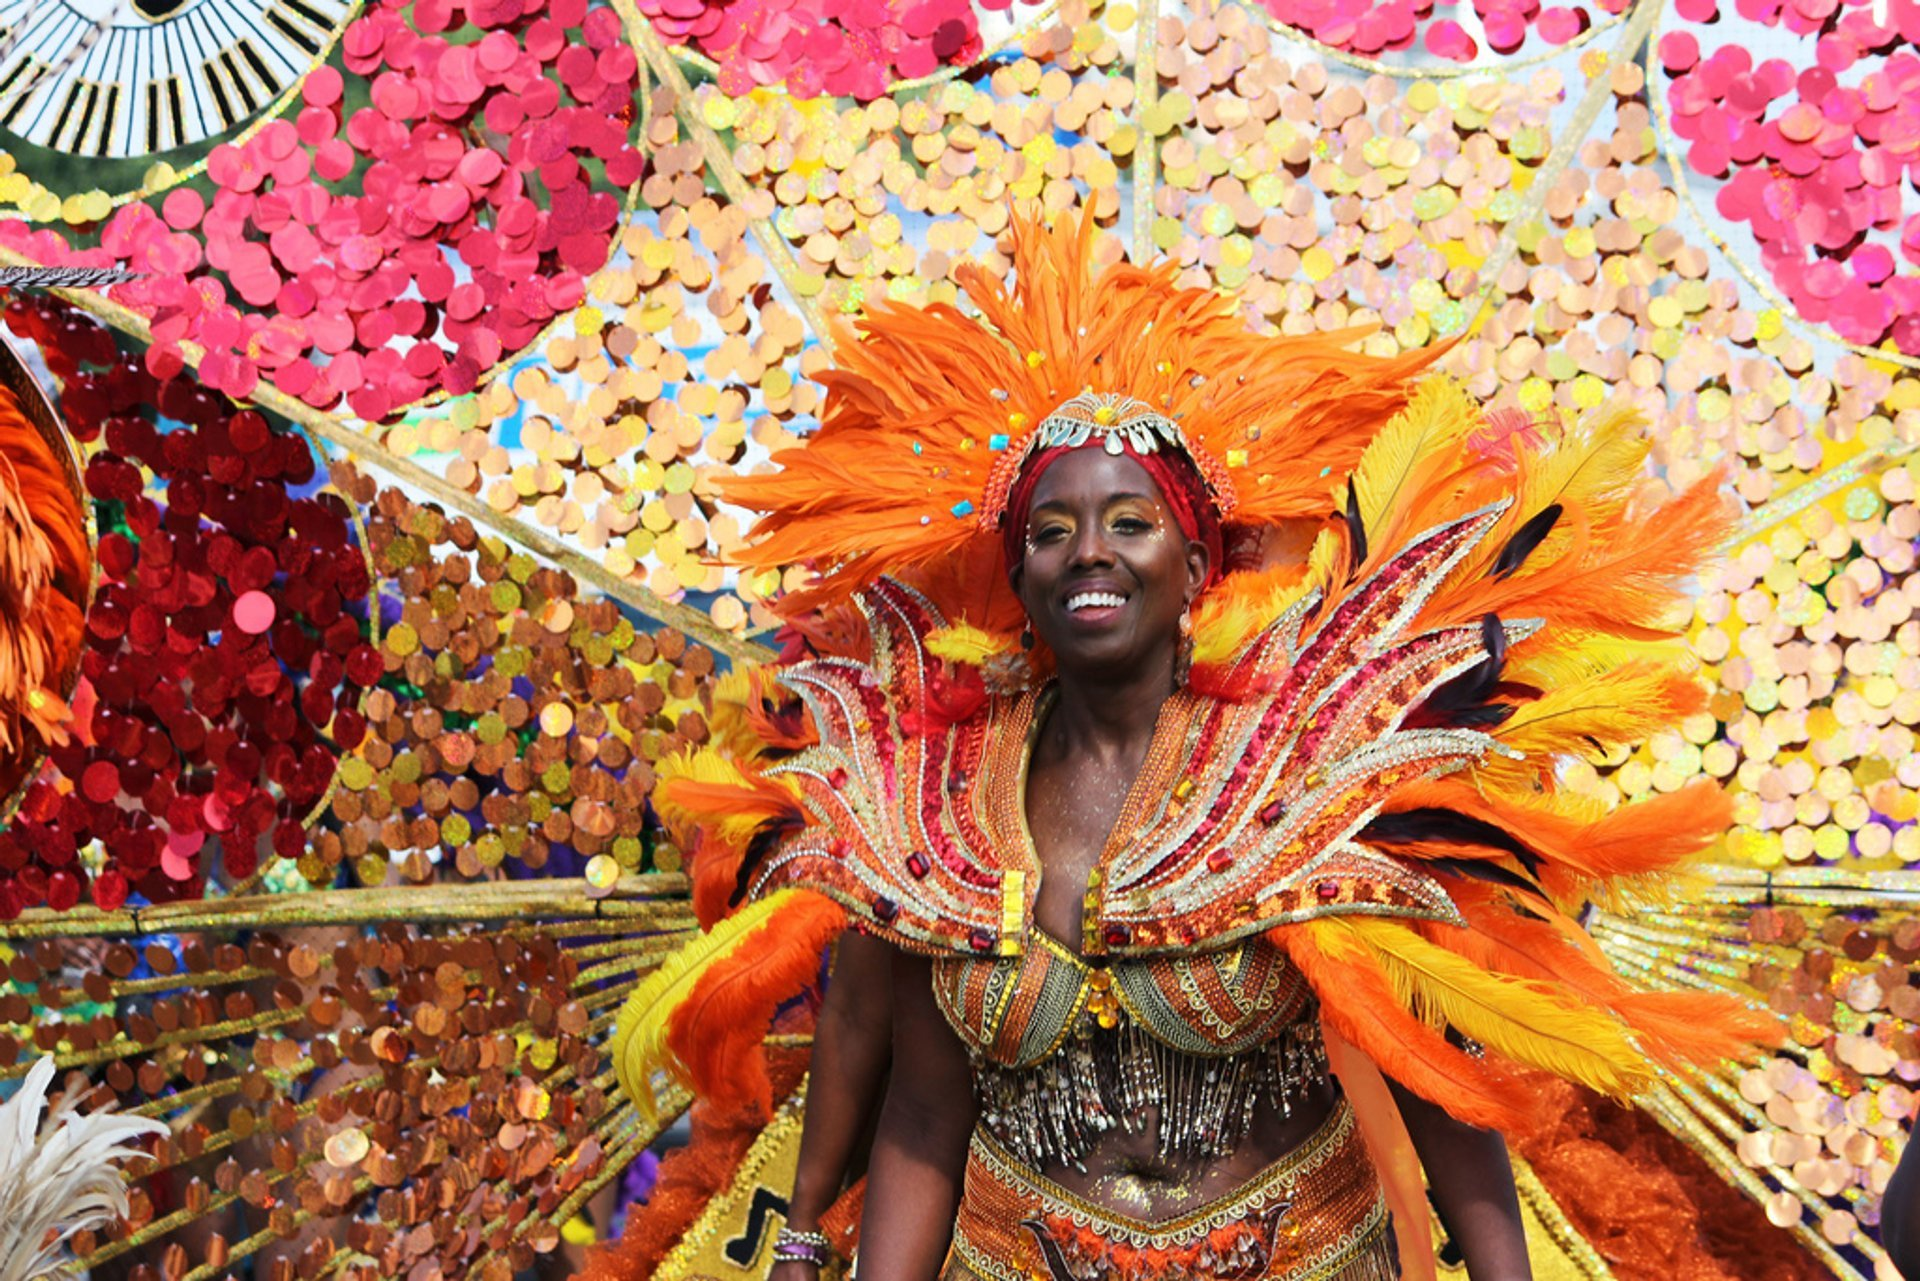 Best time to see Toronto Caribbean Carnival or Caribana in Toronto 2019